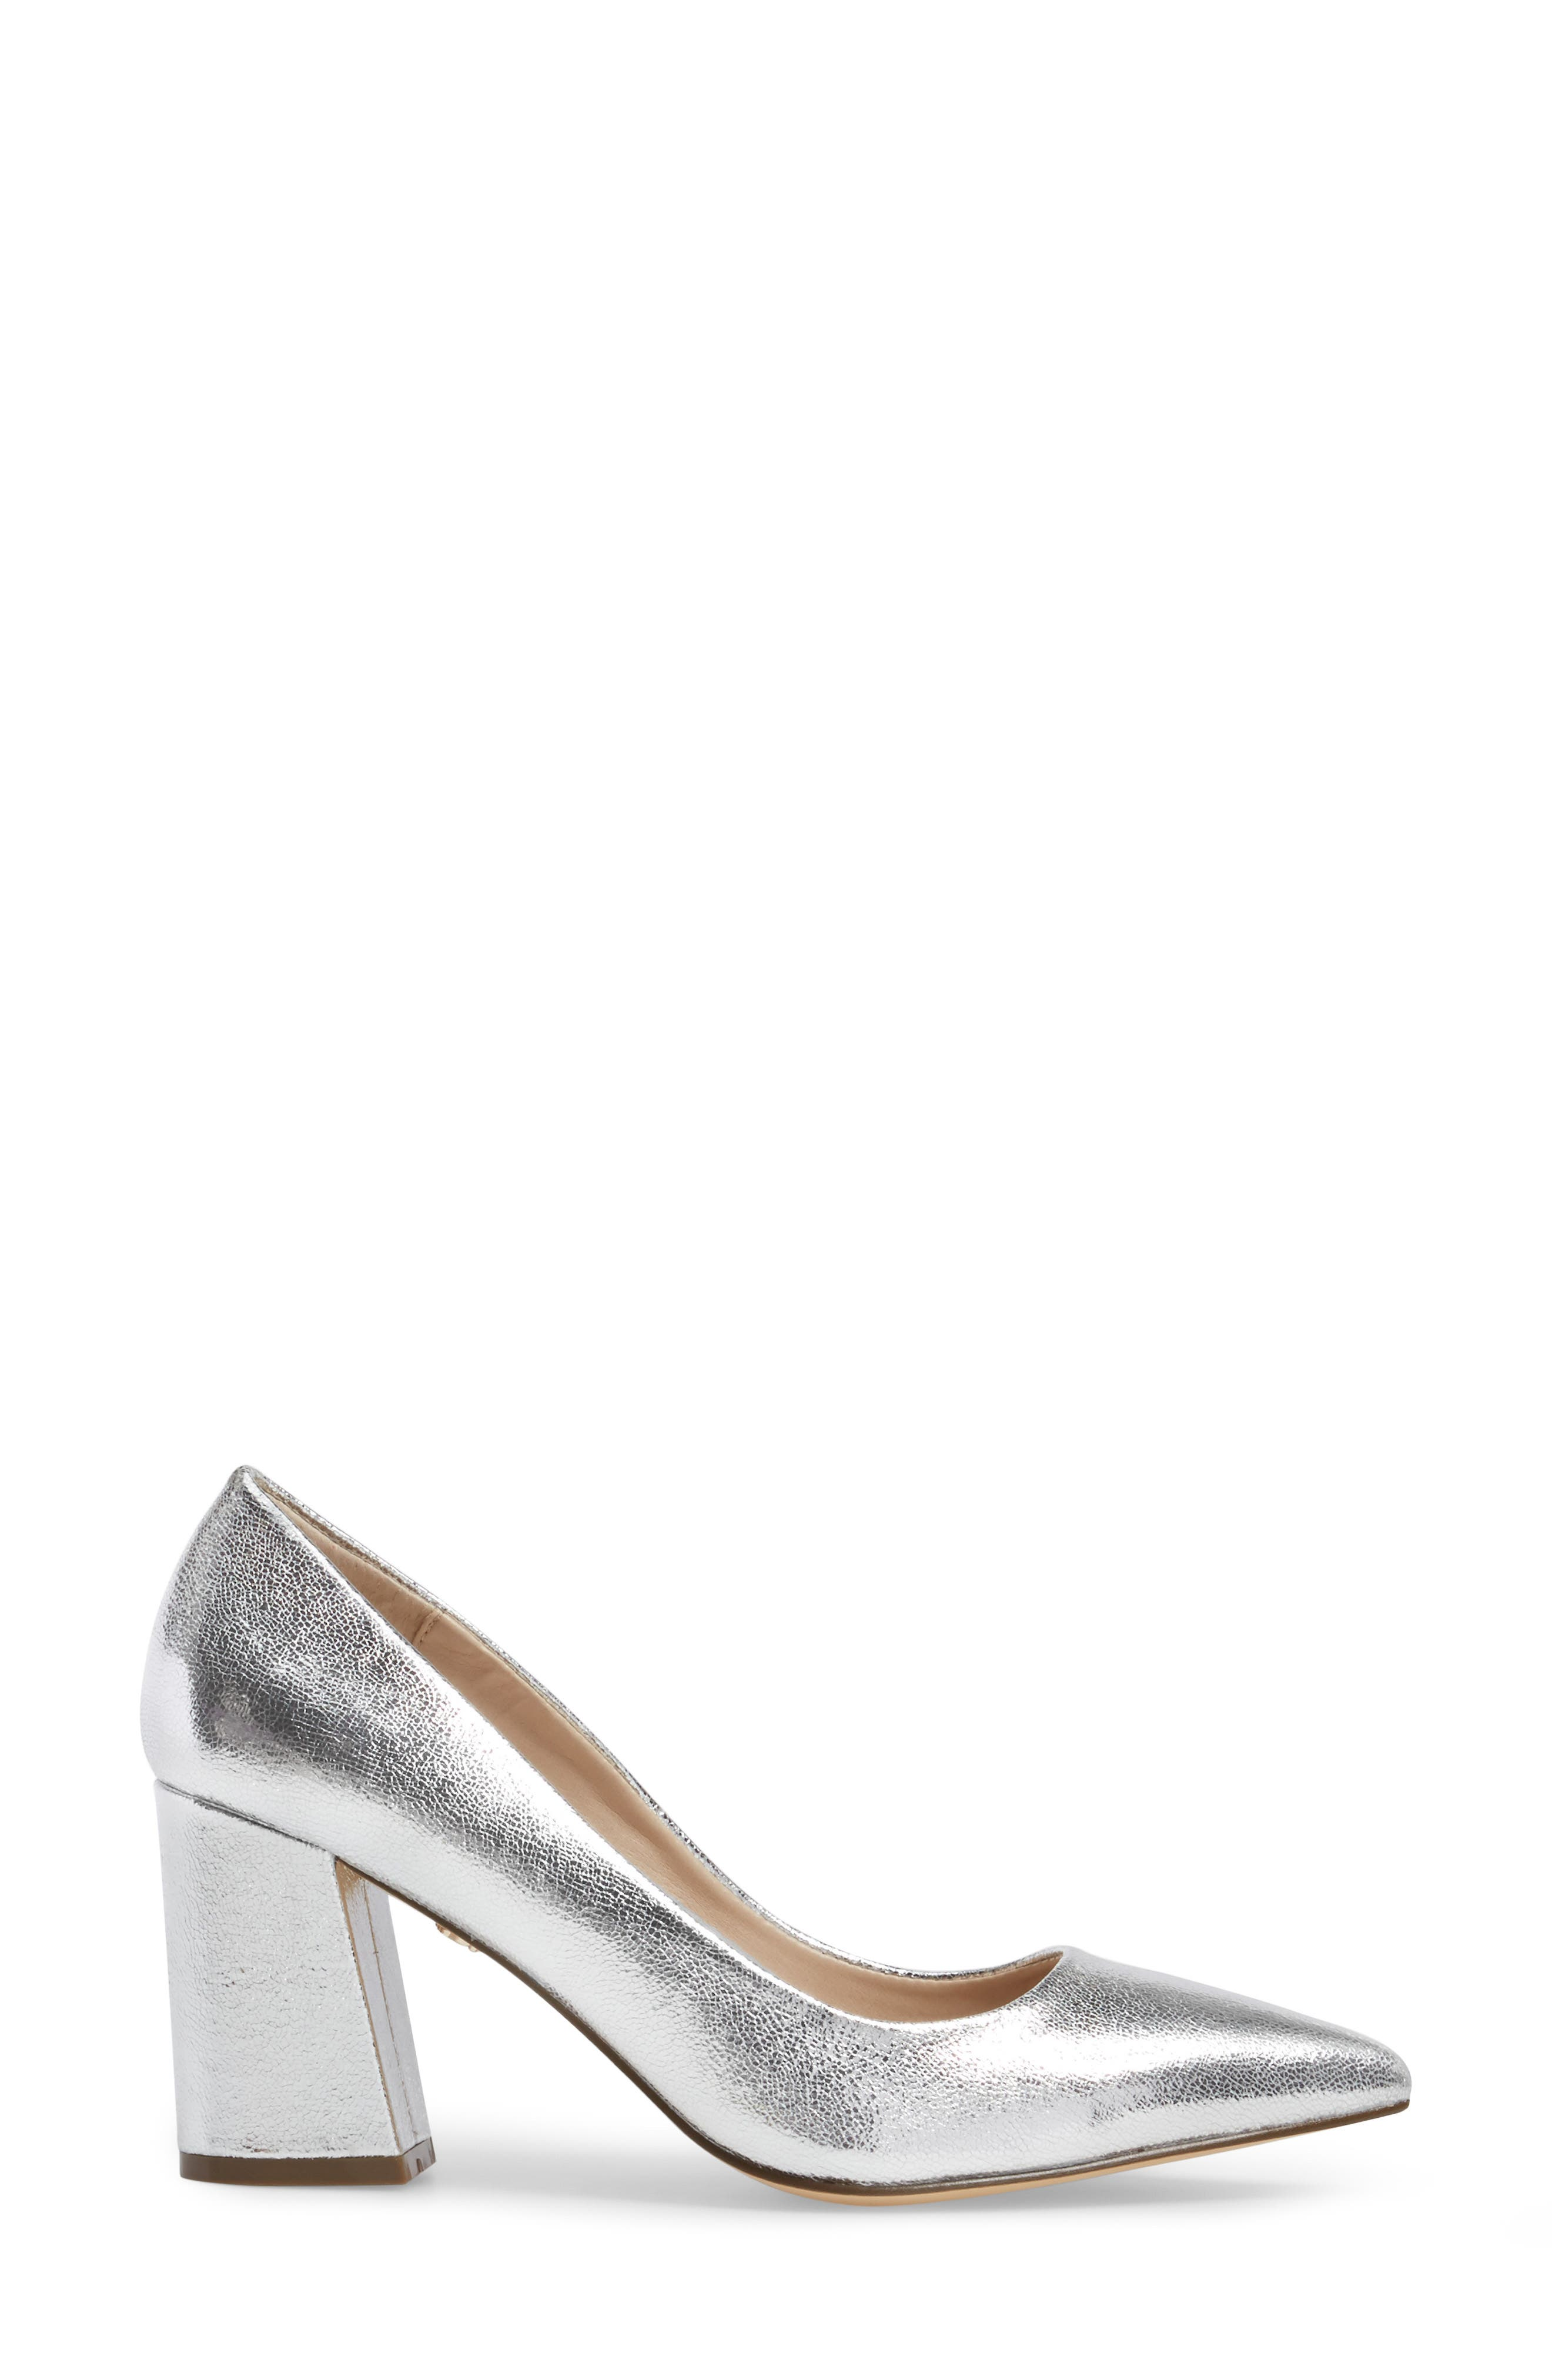 Tinsley Pointy Toe Pump,                             Alternate thumbnail 3, color,                             Silver Fabric